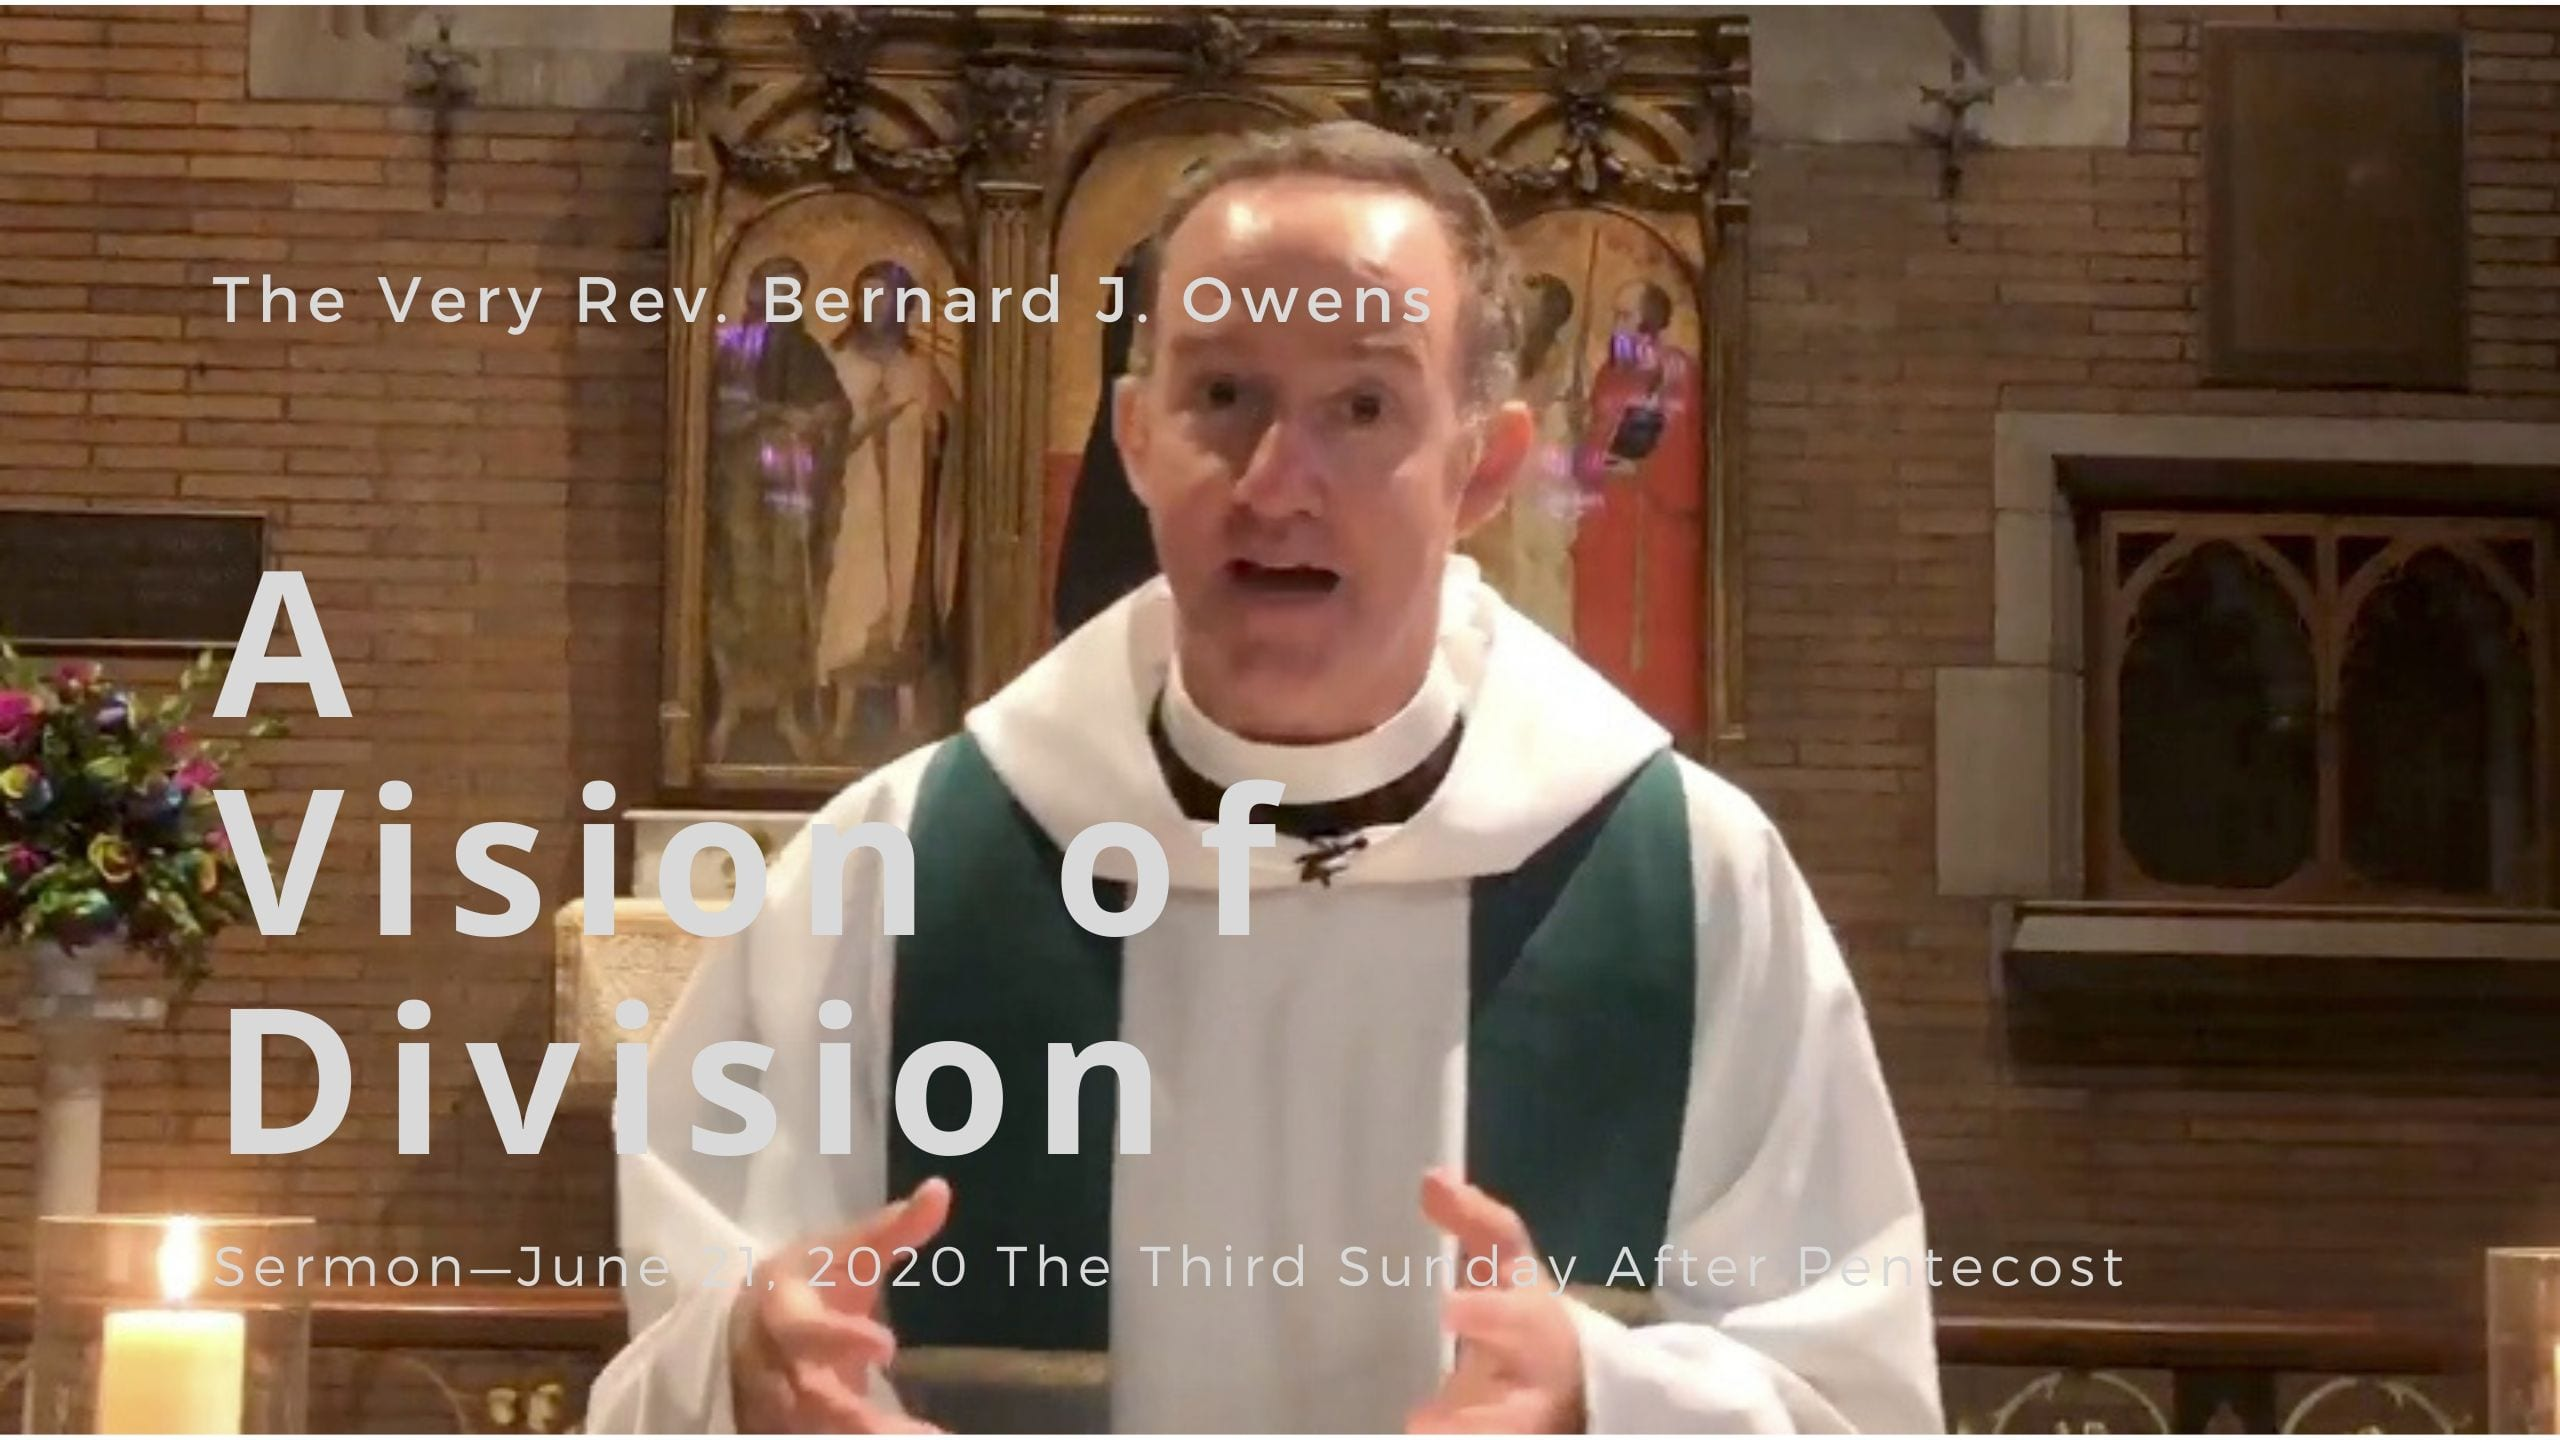 Video Sermon: A Vision of Division